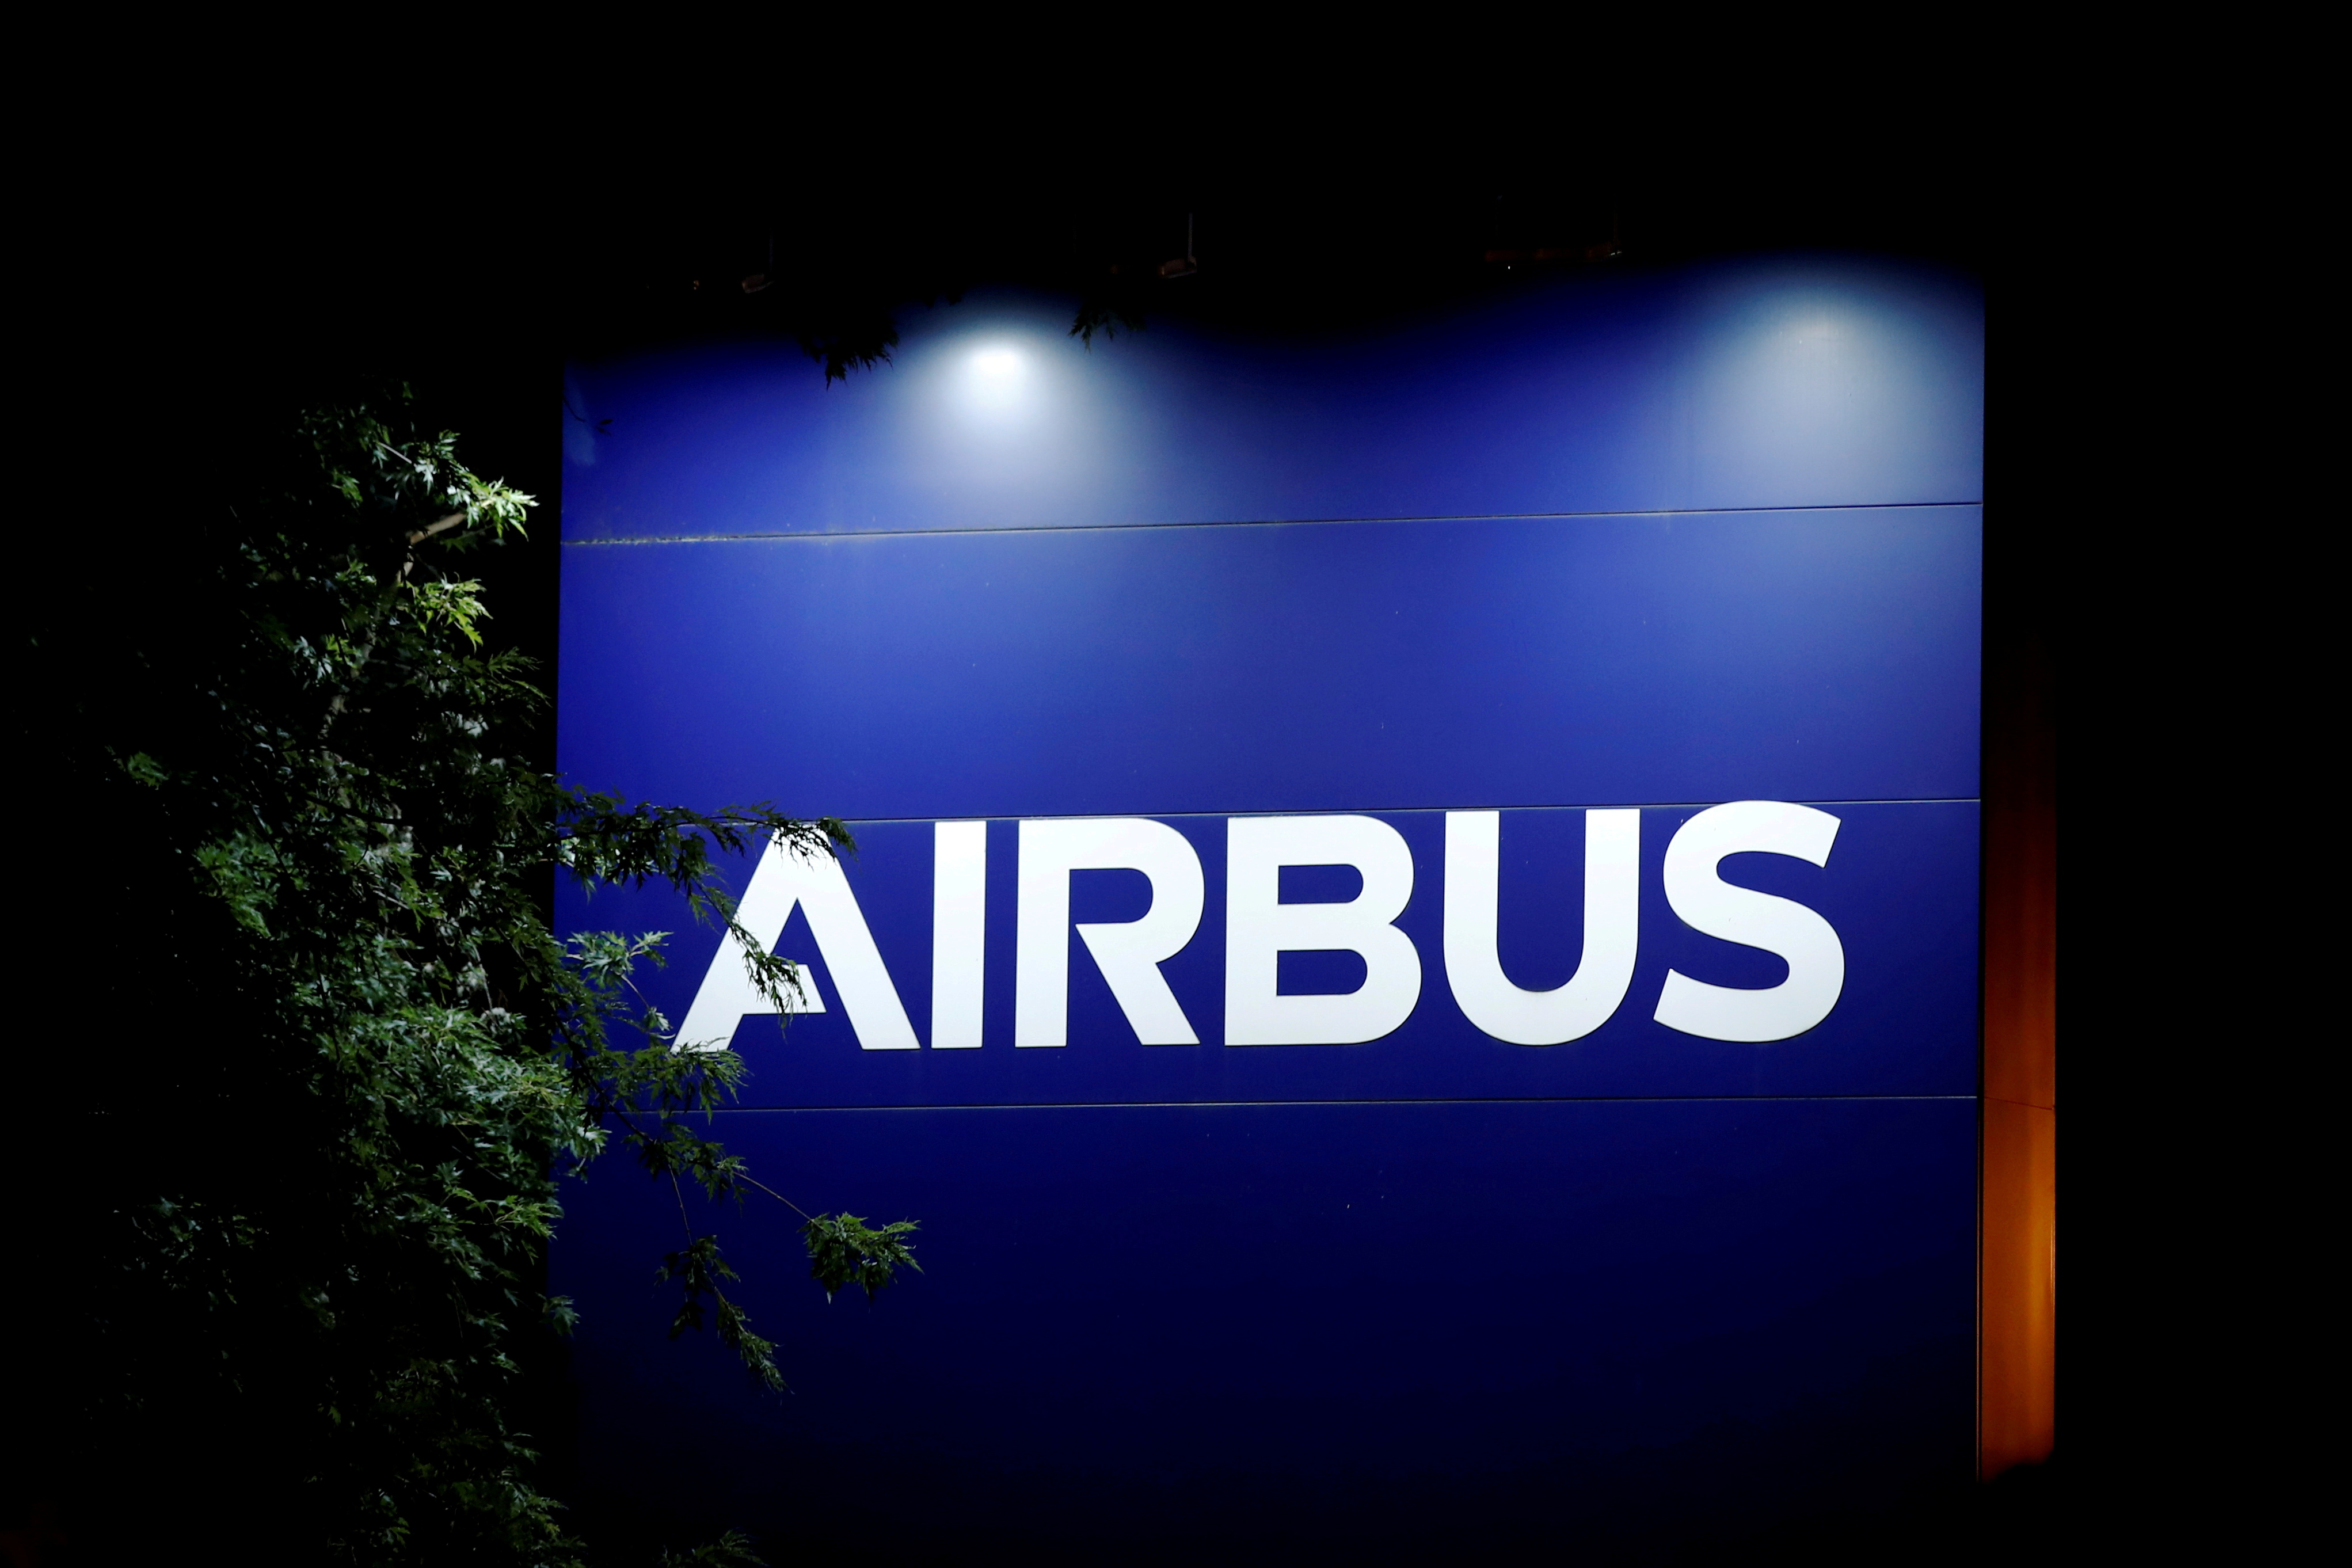 A logo of Airbus is seen at the entrance of its factory in Blagnac near Toulouse, France July 2, 2020. REUTERS/Benoit Tessier